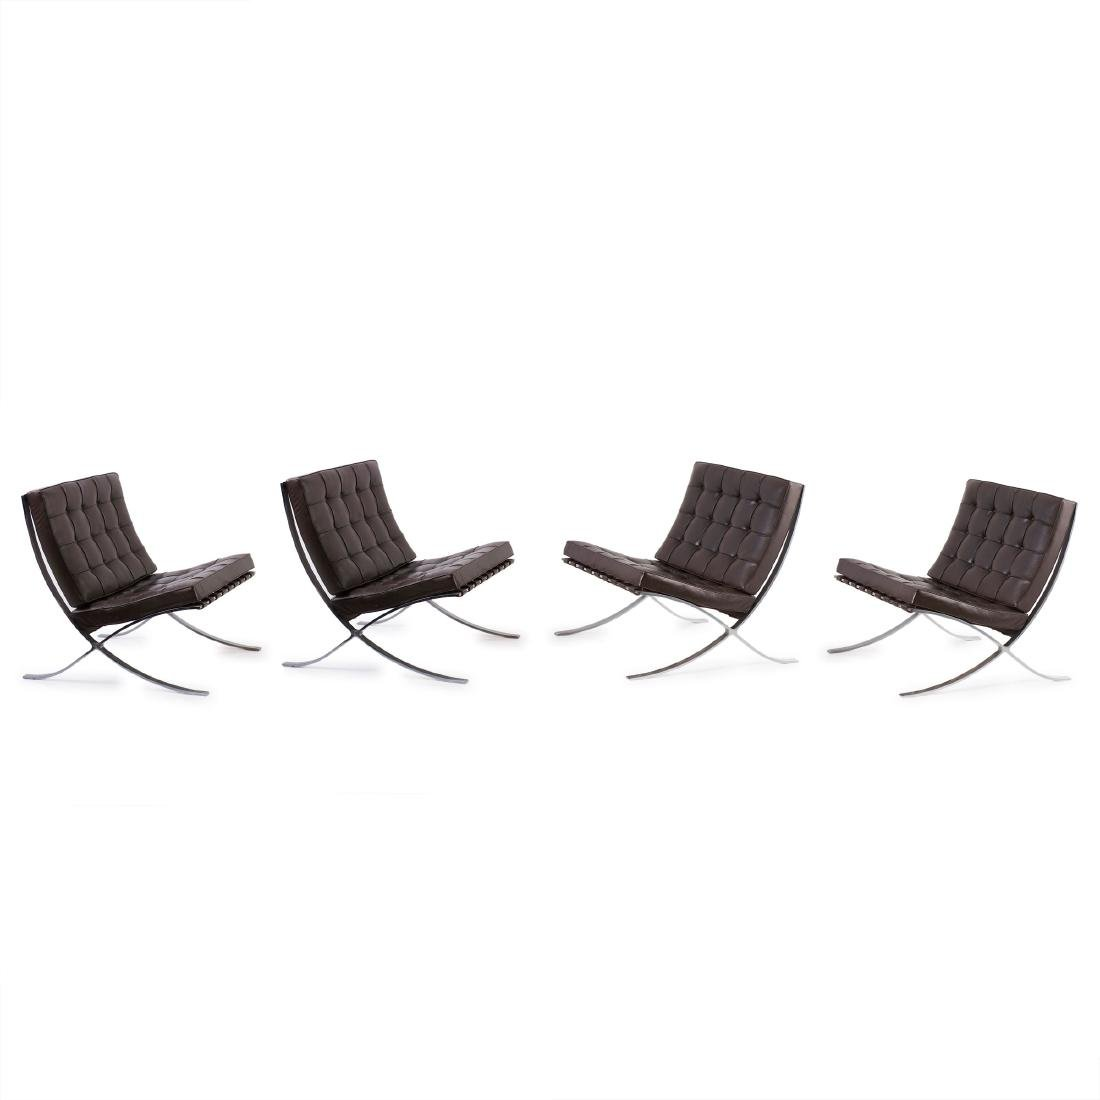 Four 'Barcelona' easy chairs, 1929